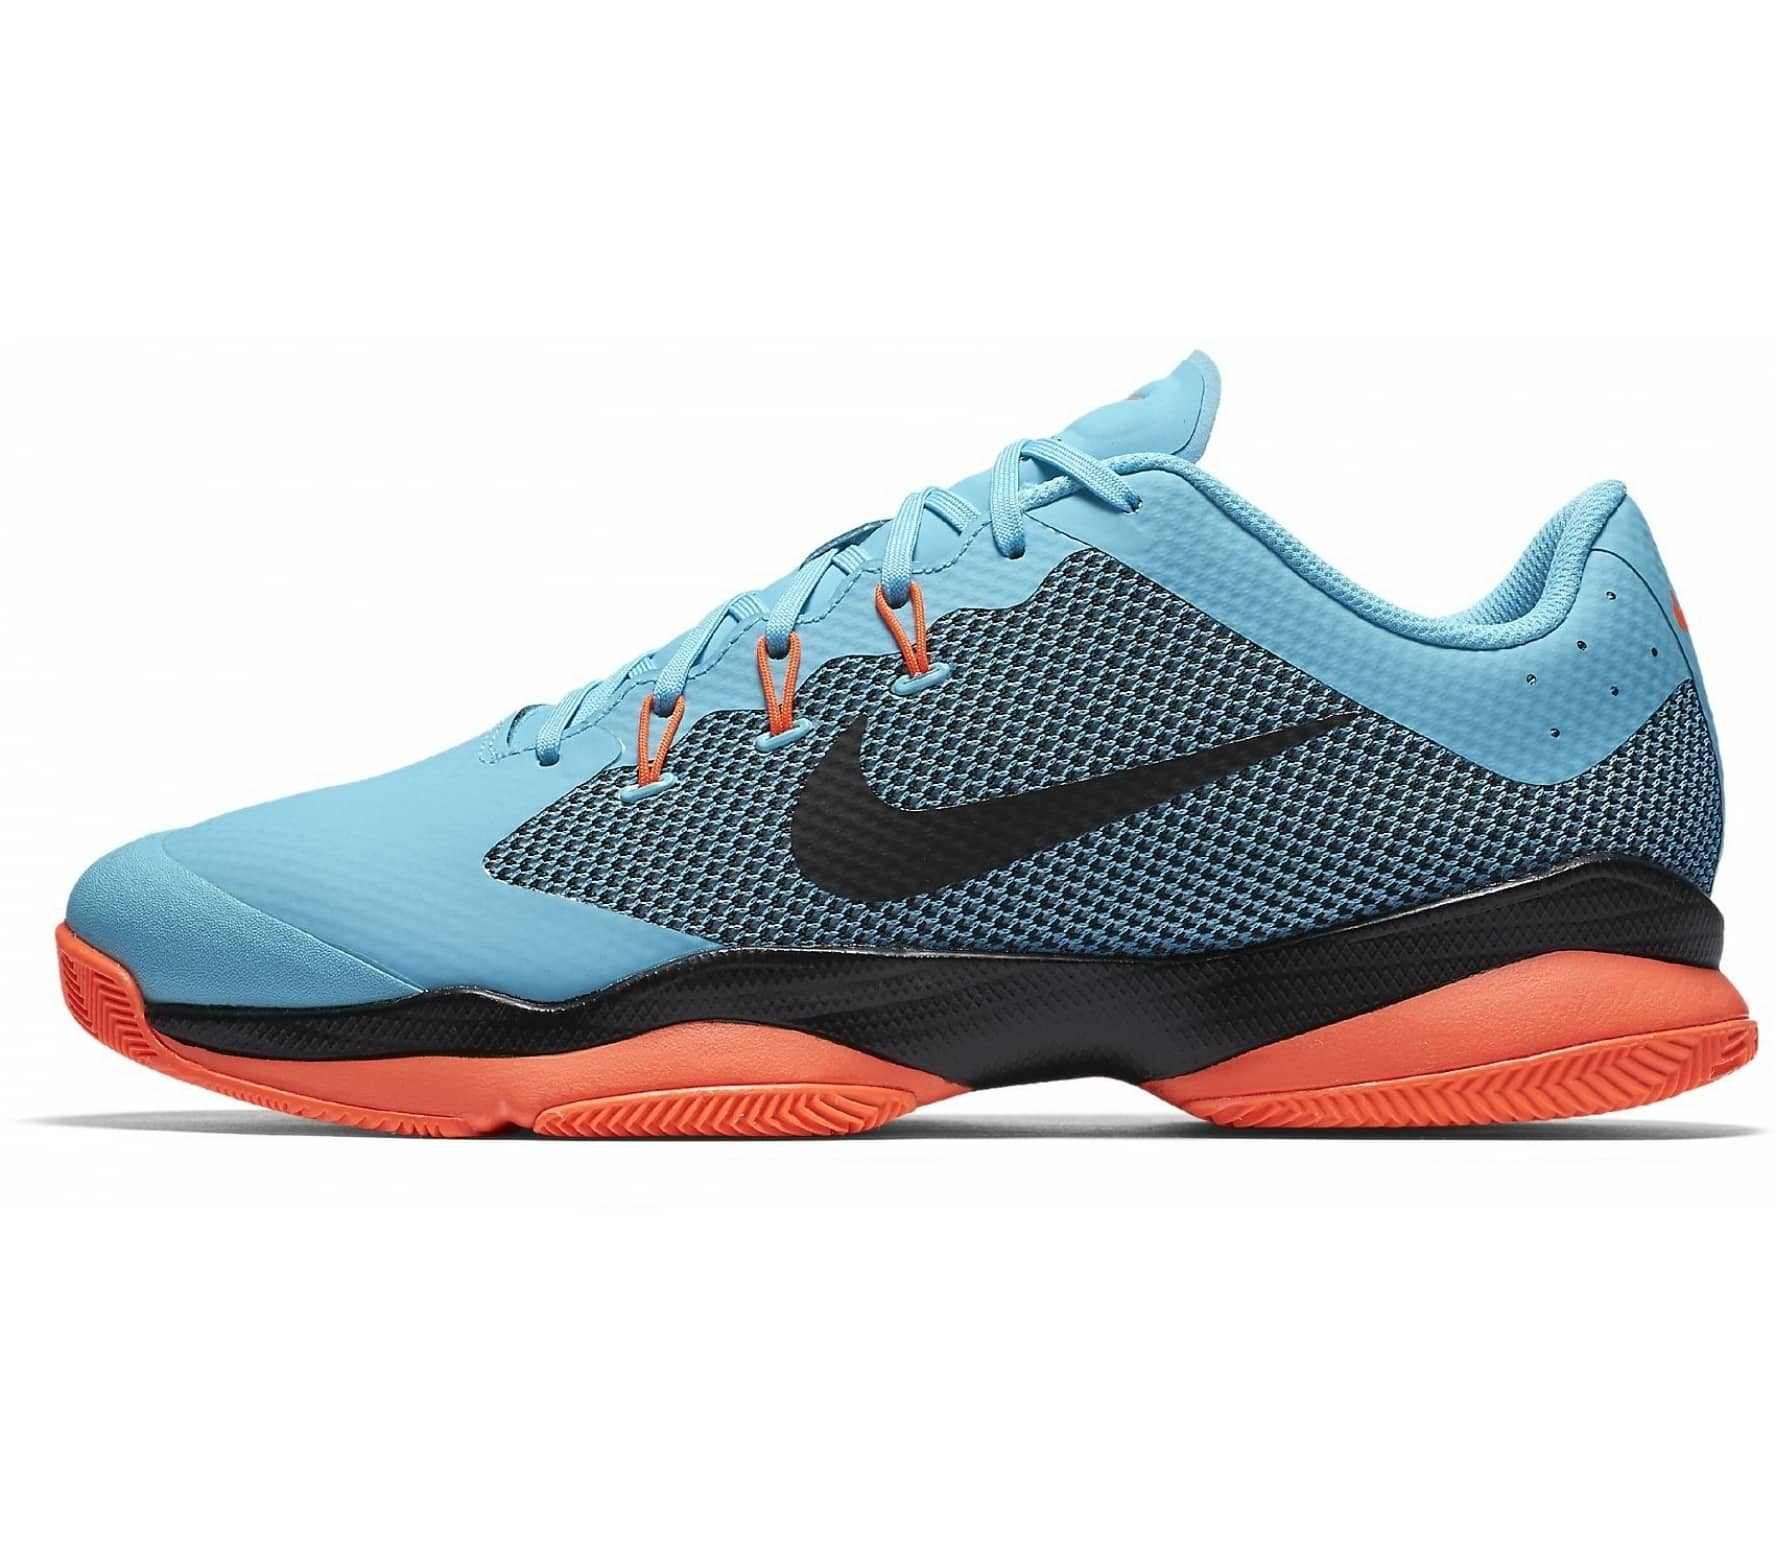 new styles 8b952 d494b Nike - Air Zoom Ultra men s tennis shoes (light blue black)